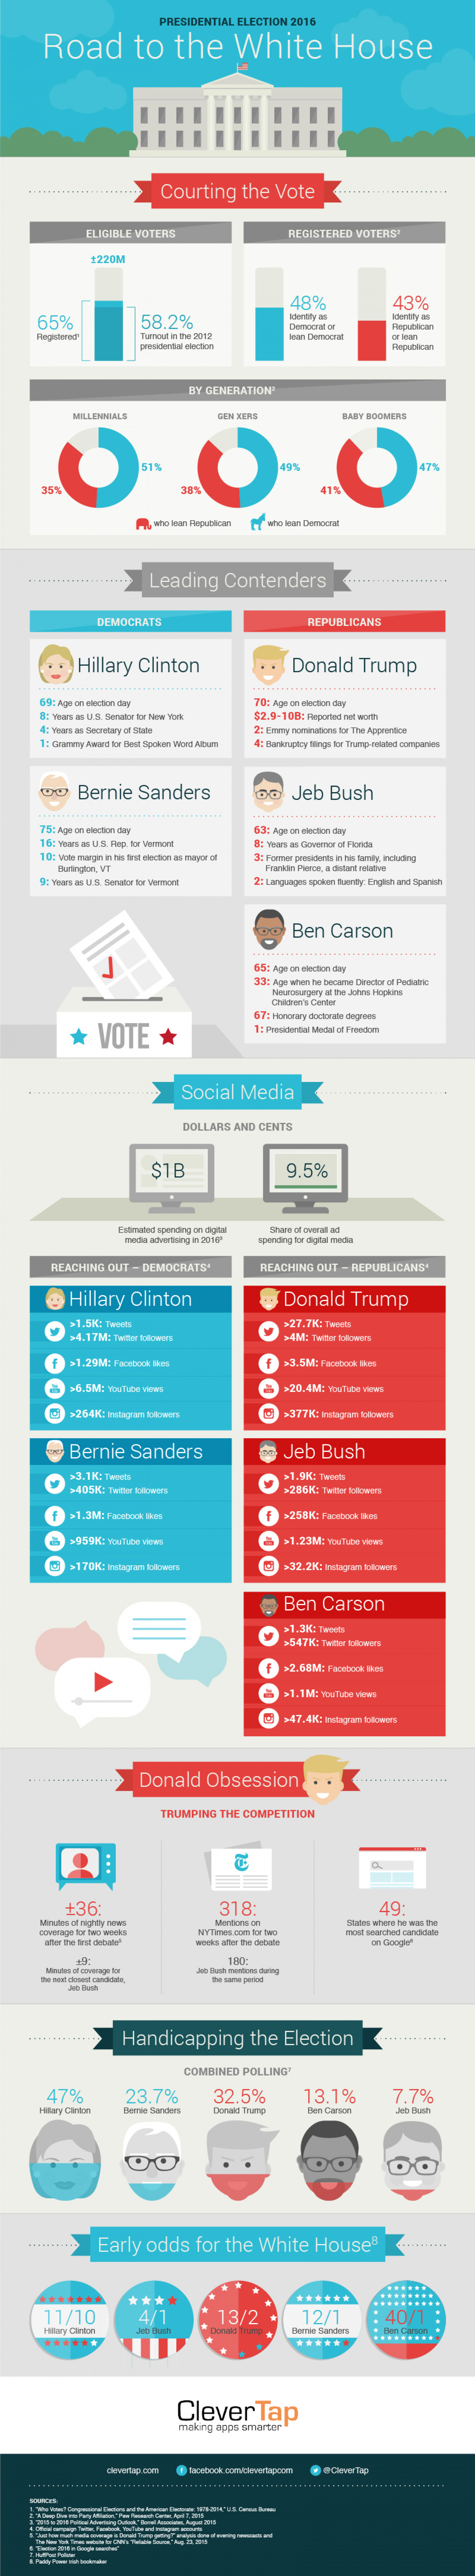 Presidential Election 2016 Road to the White House Infographic